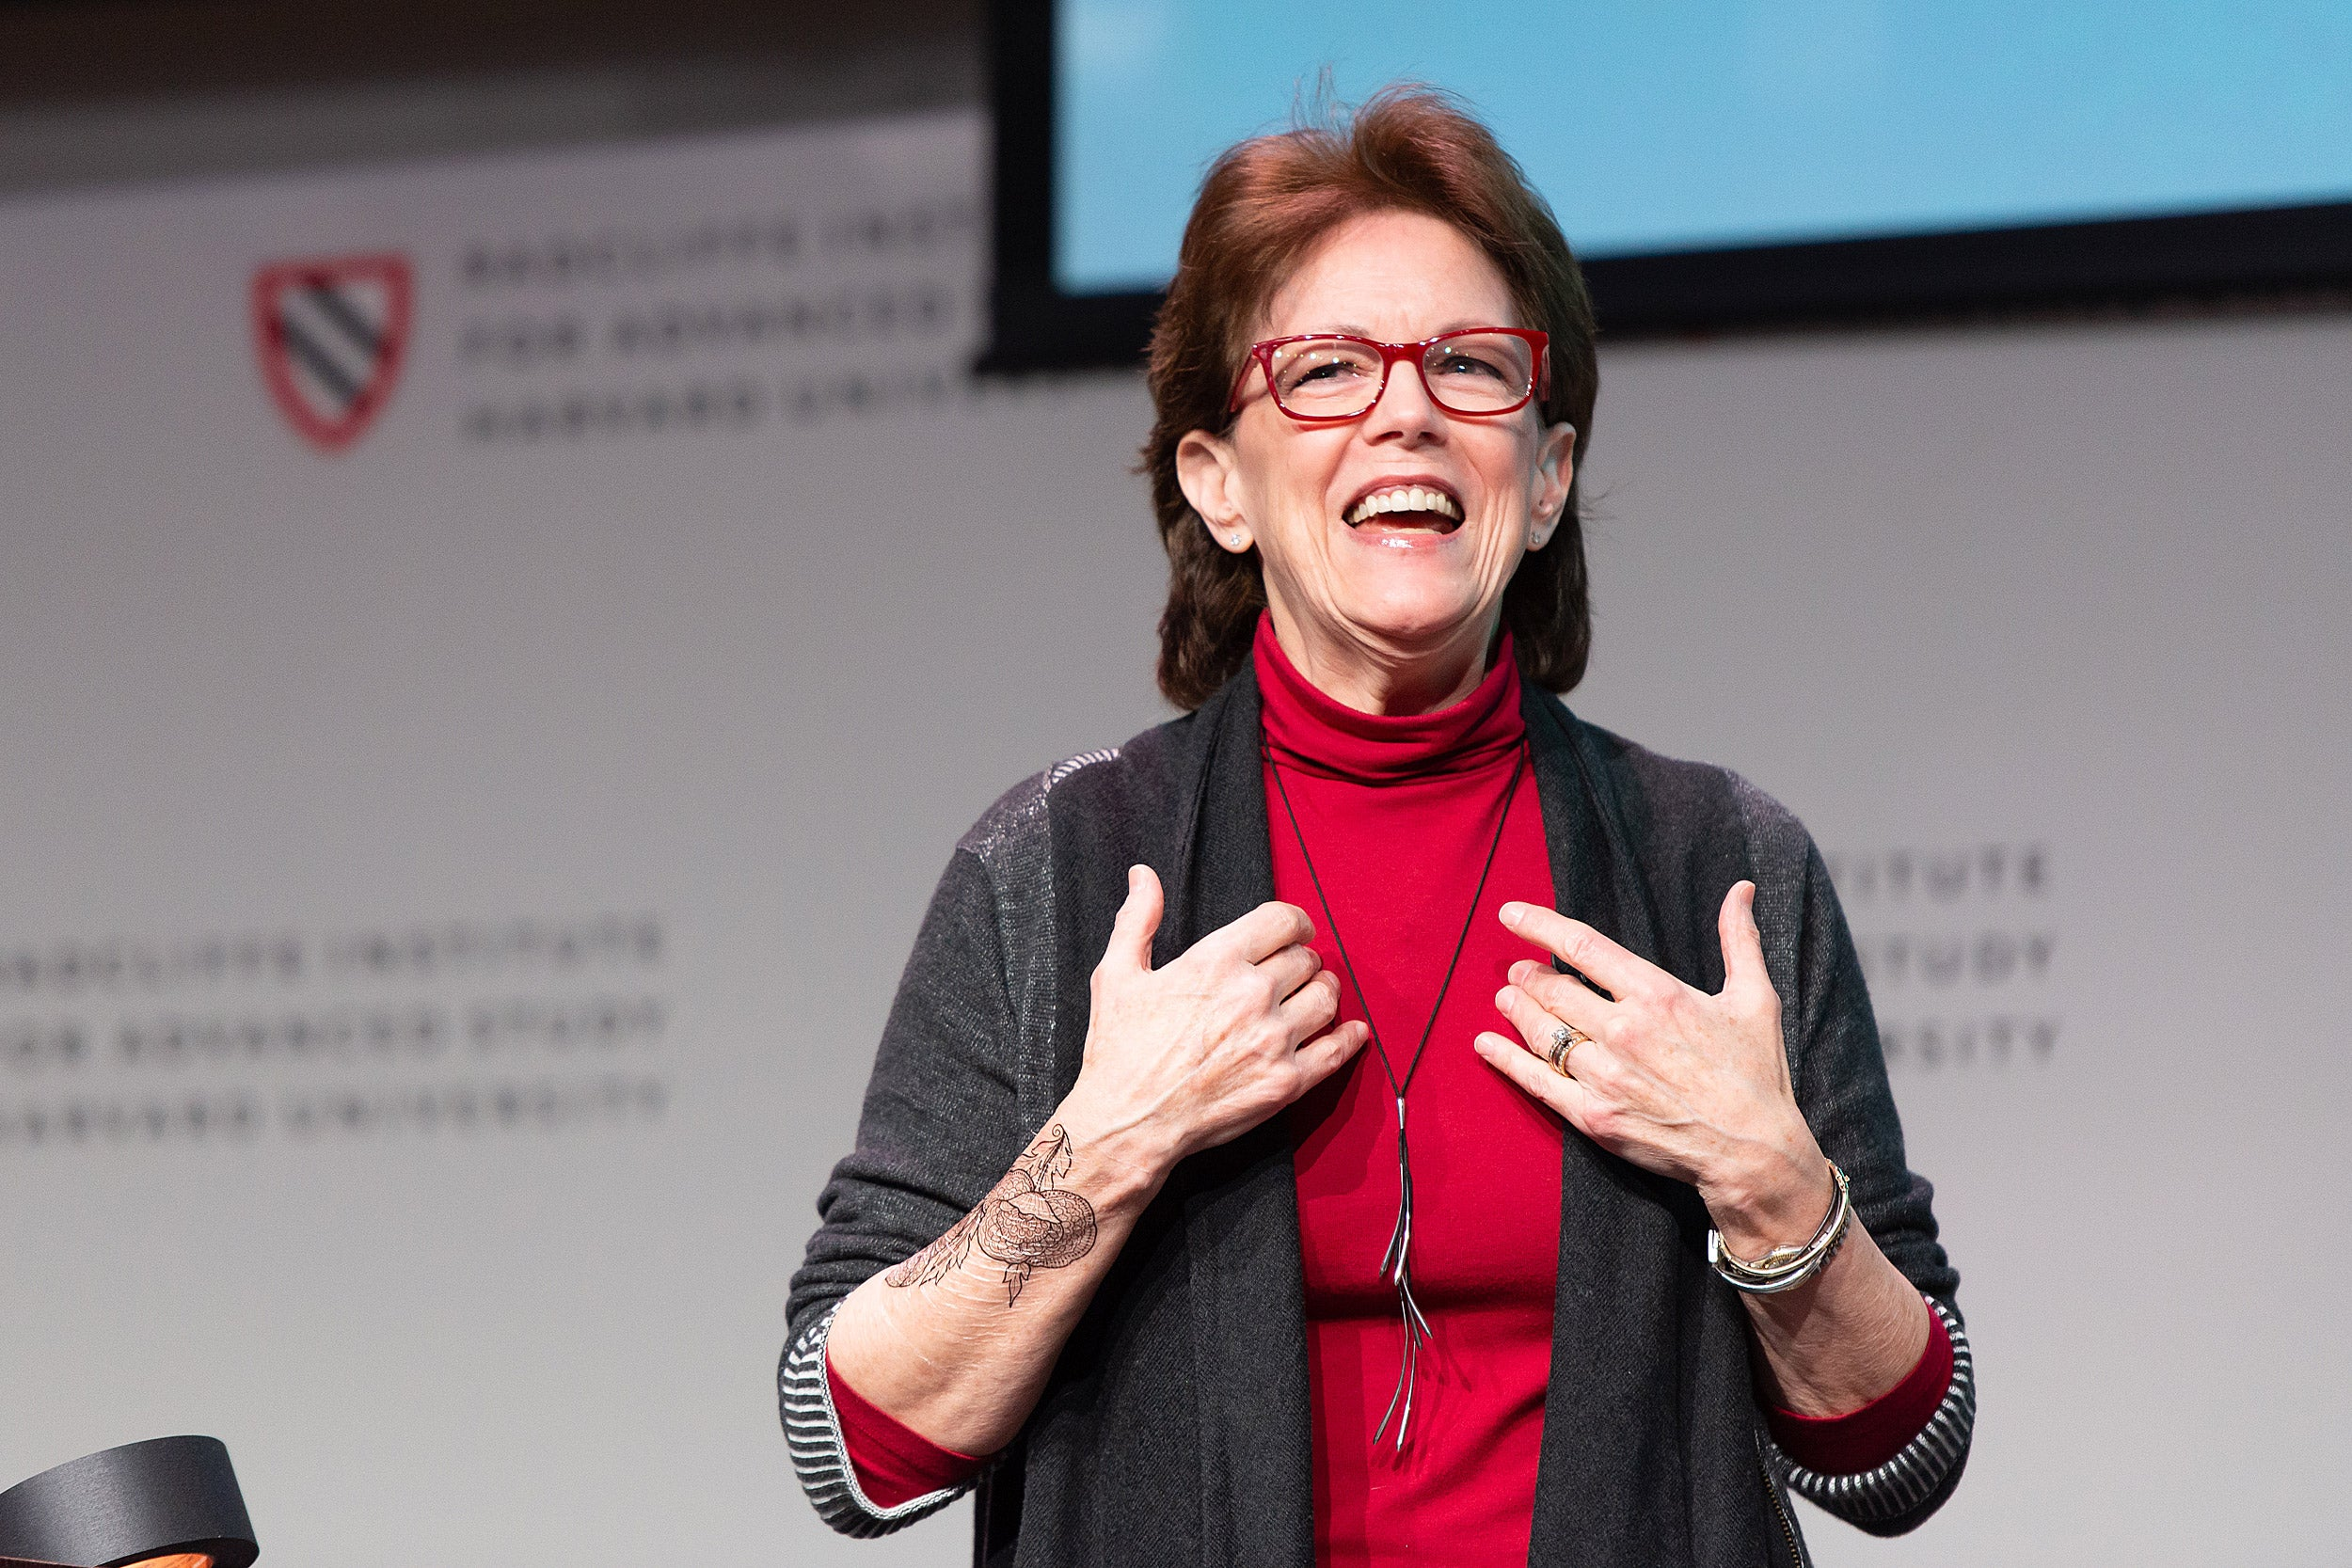 Susan Bennett, voice of Siri, speaks at Radcliffe.